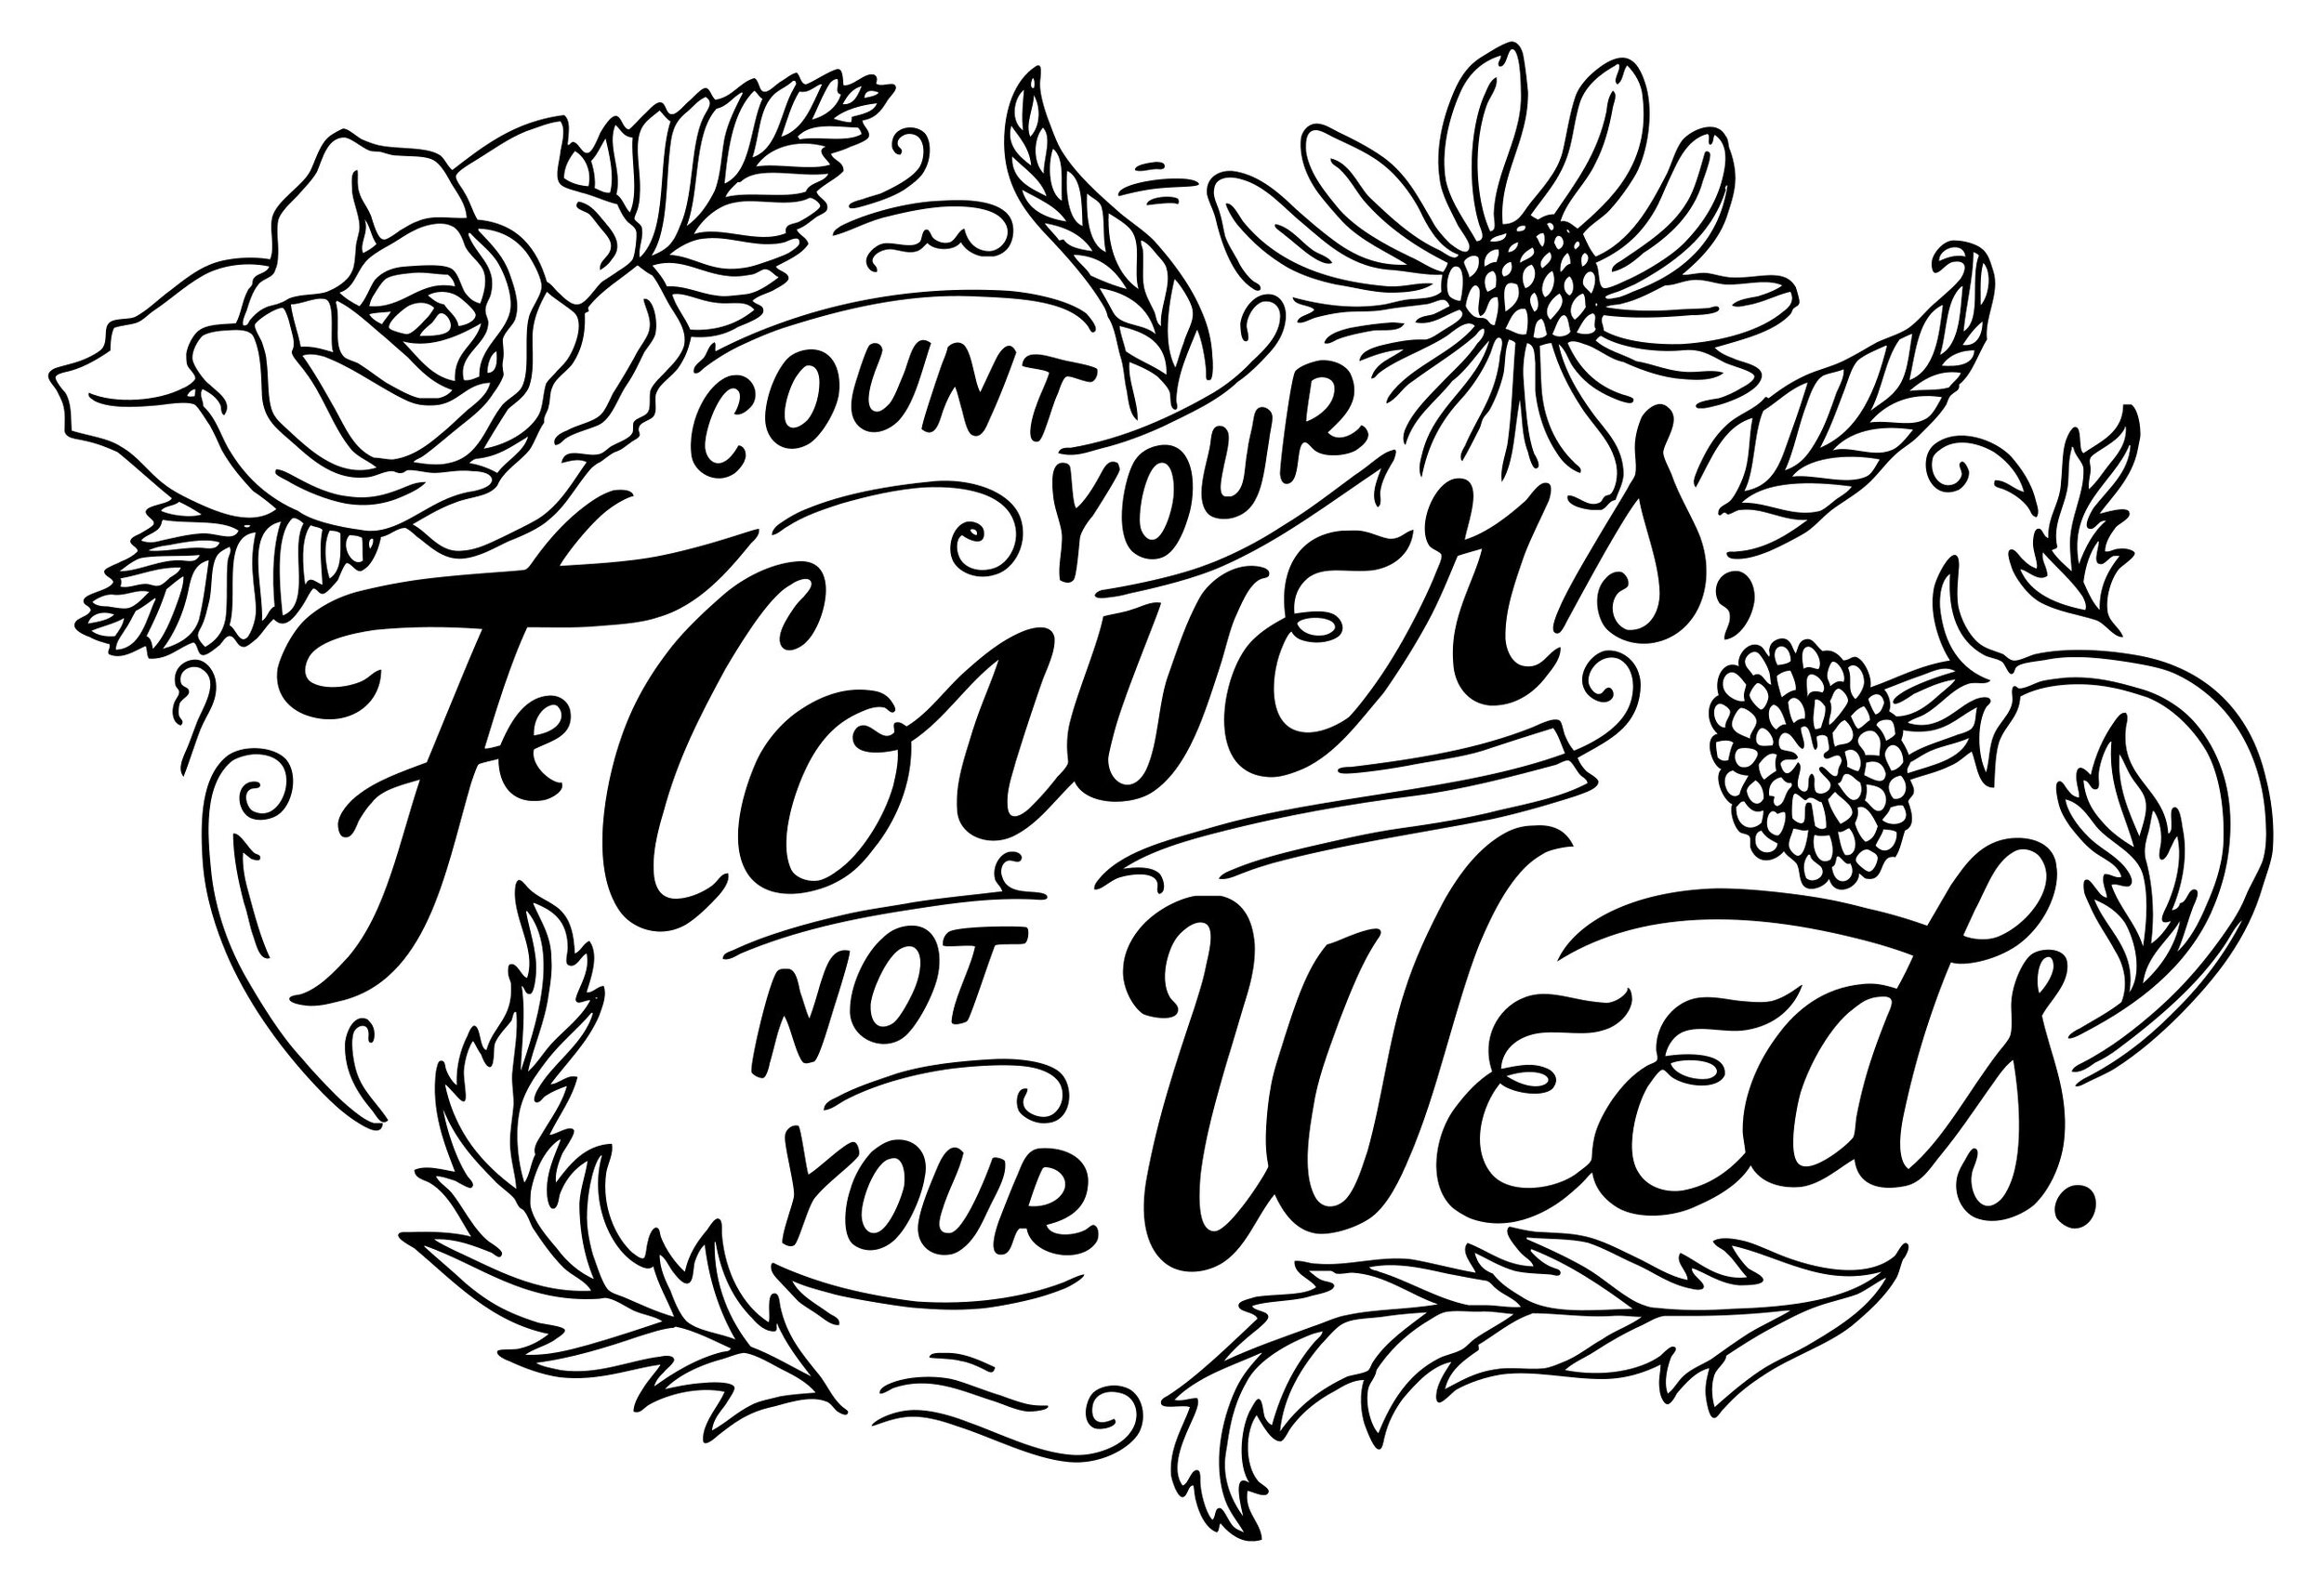 Count your flowers not your weeds.jpg